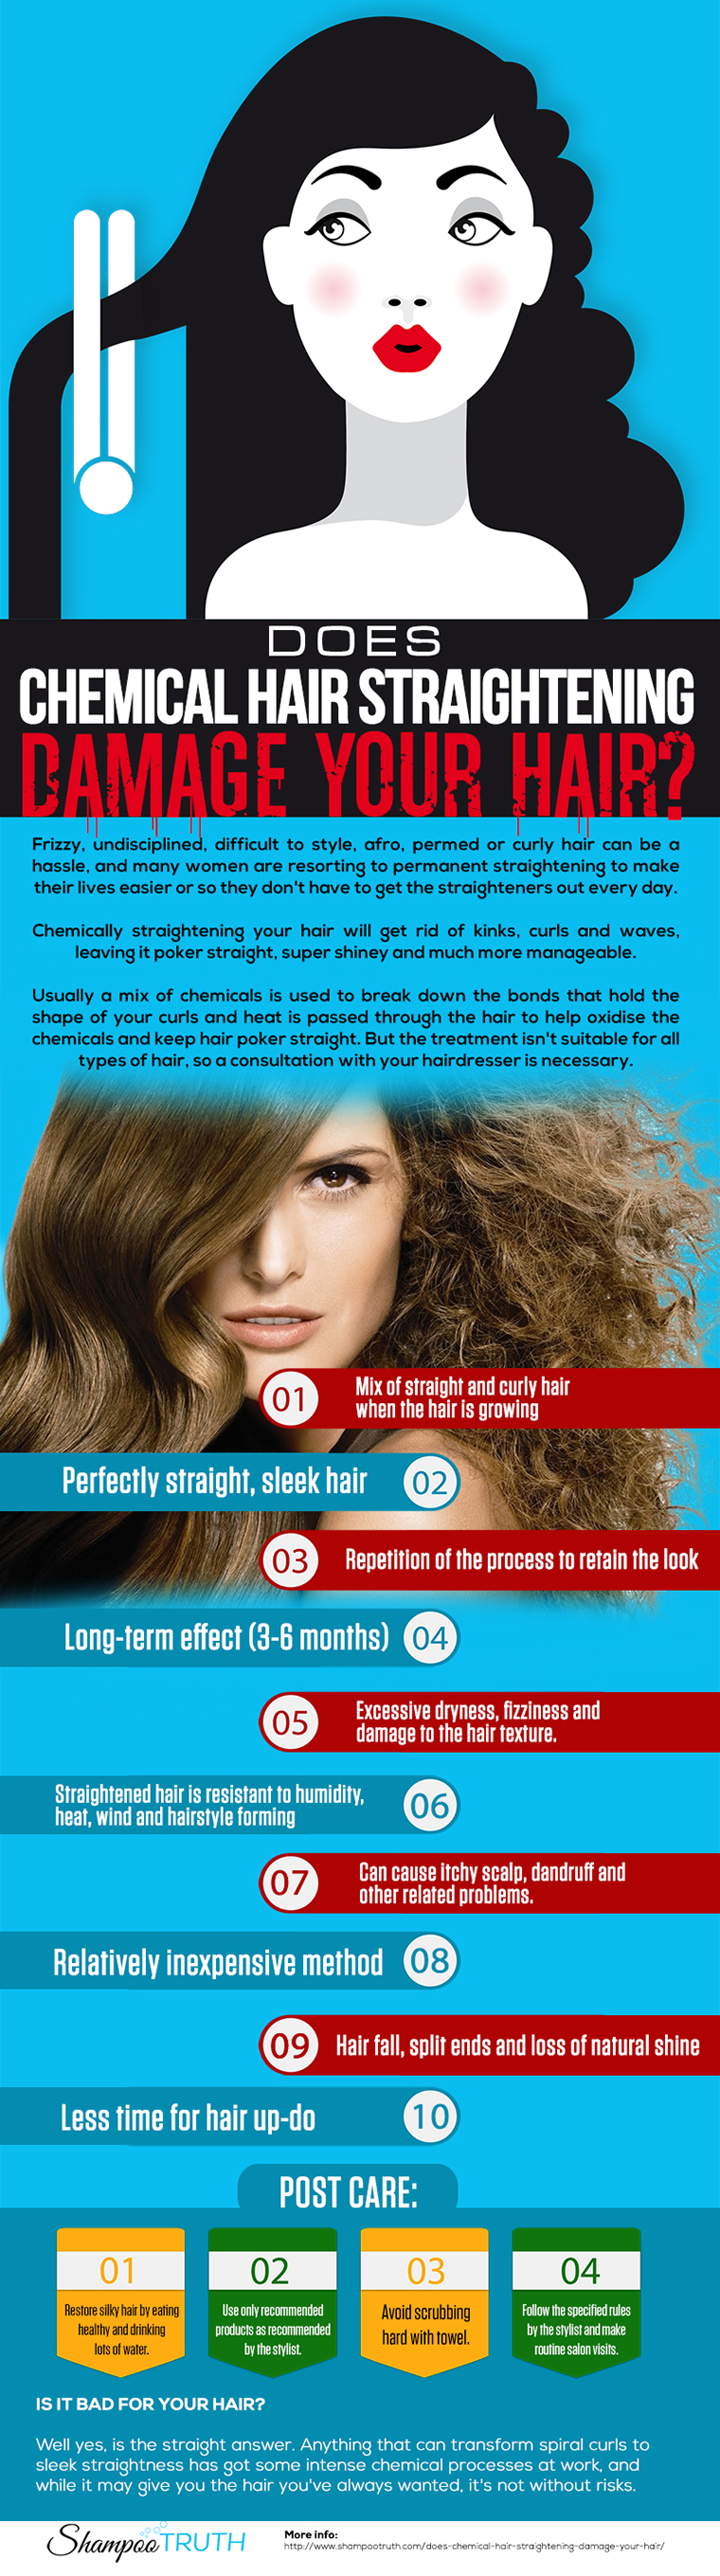 does-chemical-hair-straightening-damage-your-hair-infographic